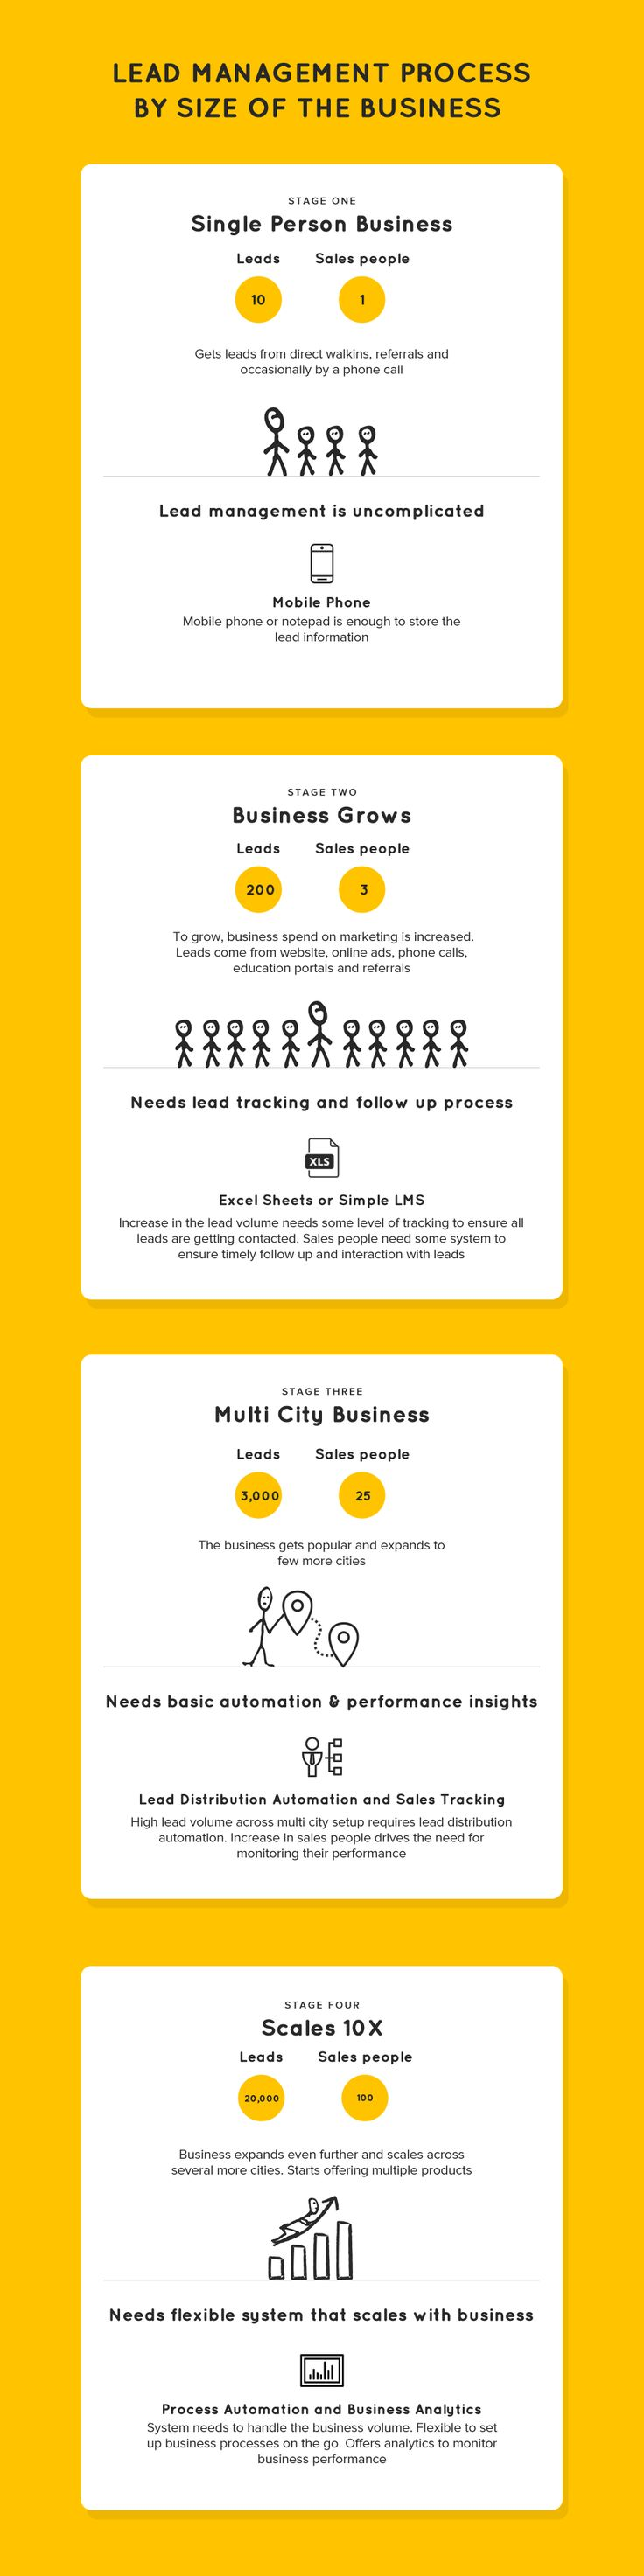 lead-management-system-infographic